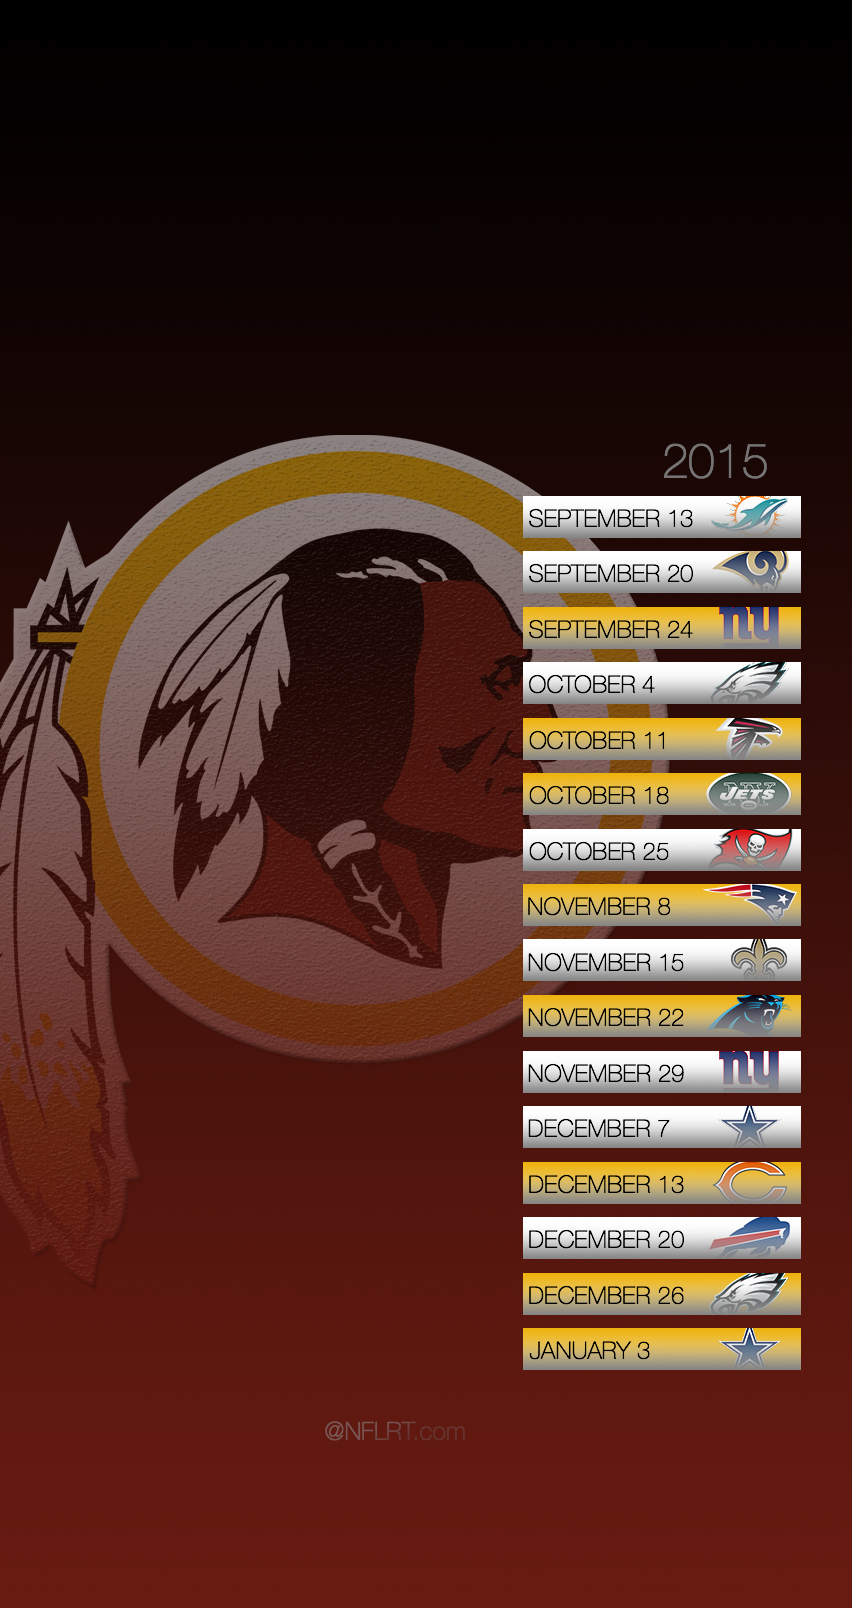 2015 NFL Schedule Wallpapers   Page 2 of 8   NFLRT 852x1608